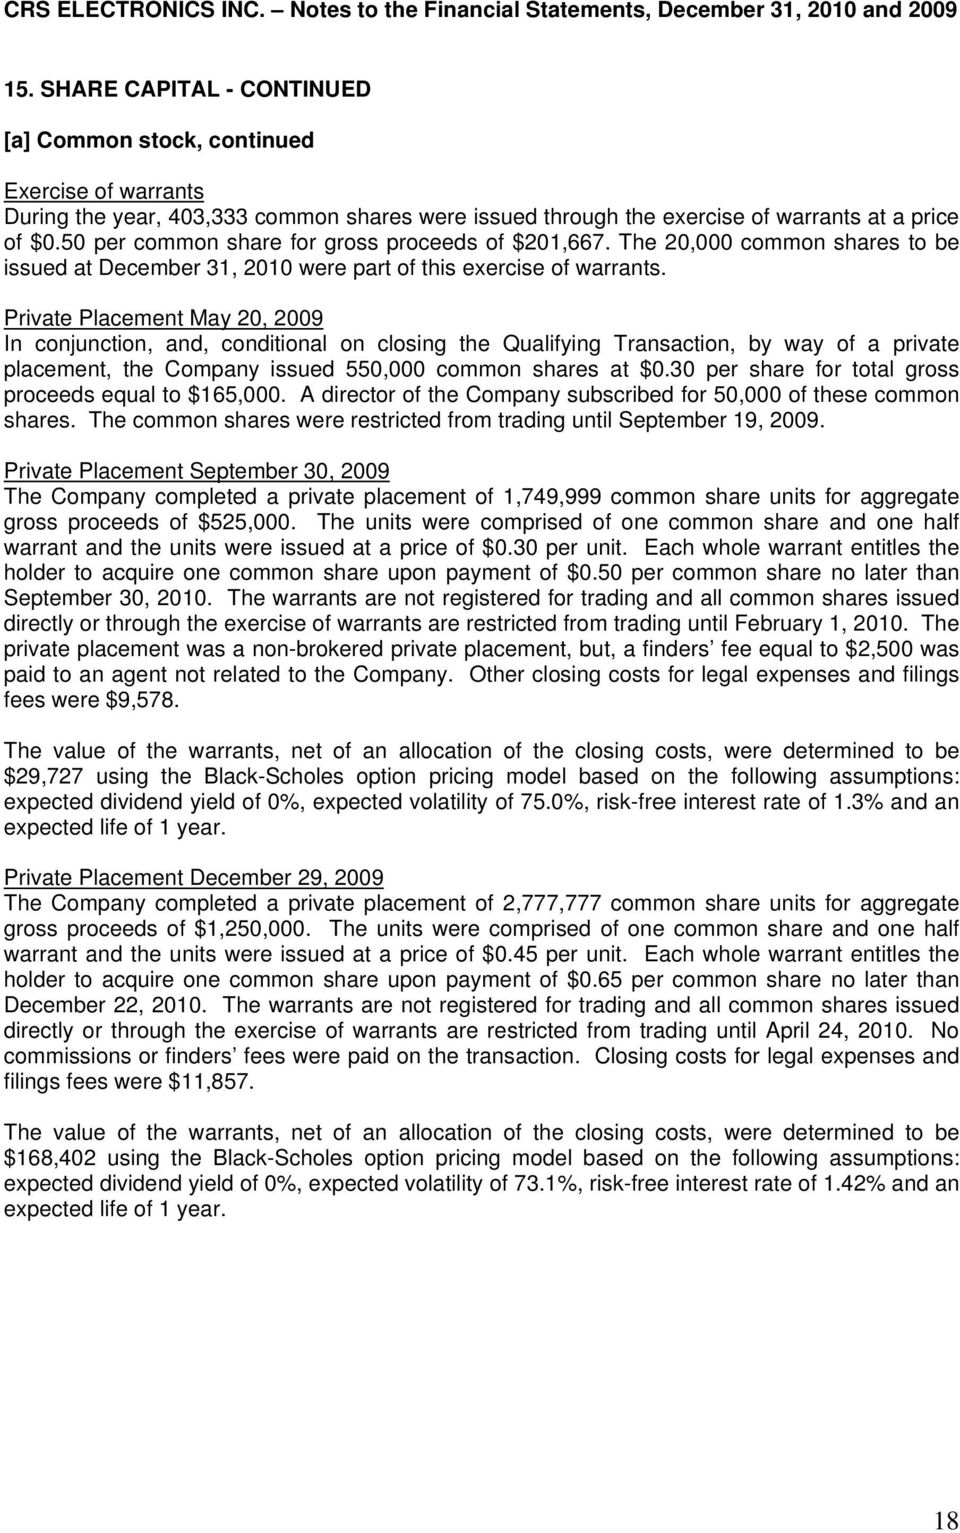 Private Placement May 20, 2009 In conjunction, and, conditional on closing the Qualifying Transaction, by way of a private placement, the Company issued 550,000 common shares at $0.